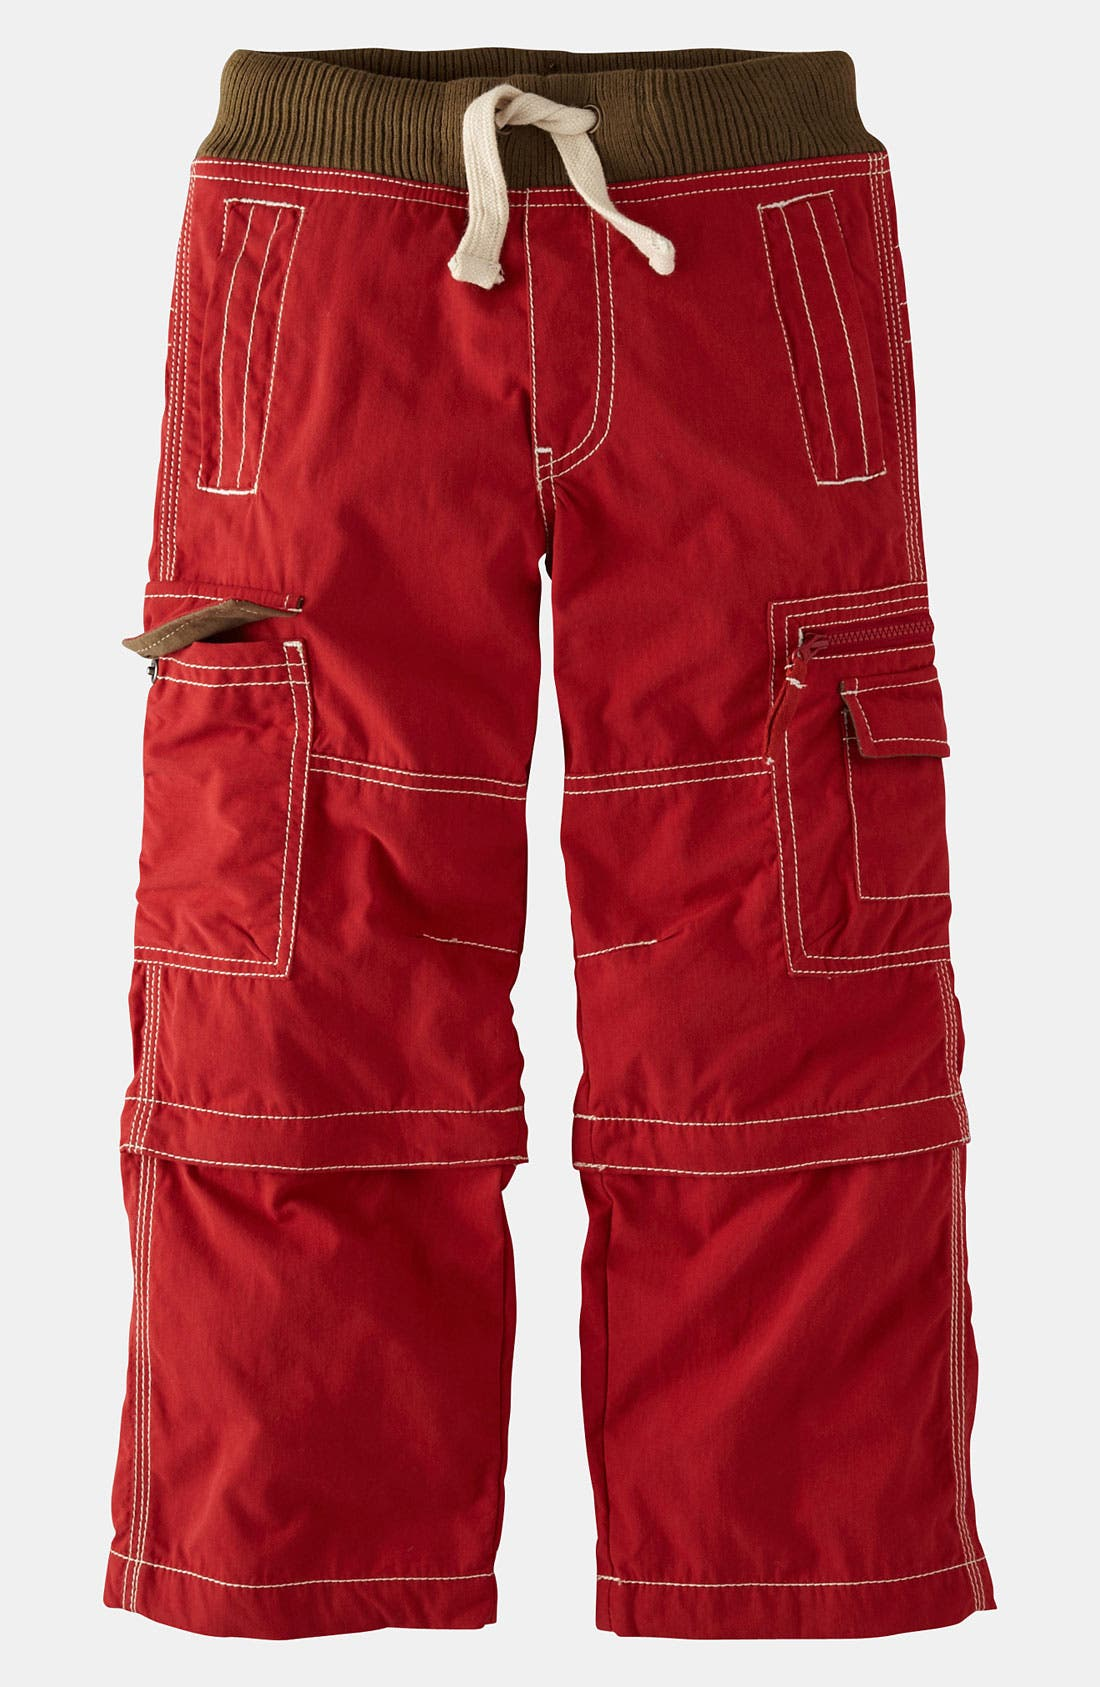 Alternate Image 1 Selected - Mini Boden Convertible Cargo Pants (Toddler, Little Boys & Big Boys)